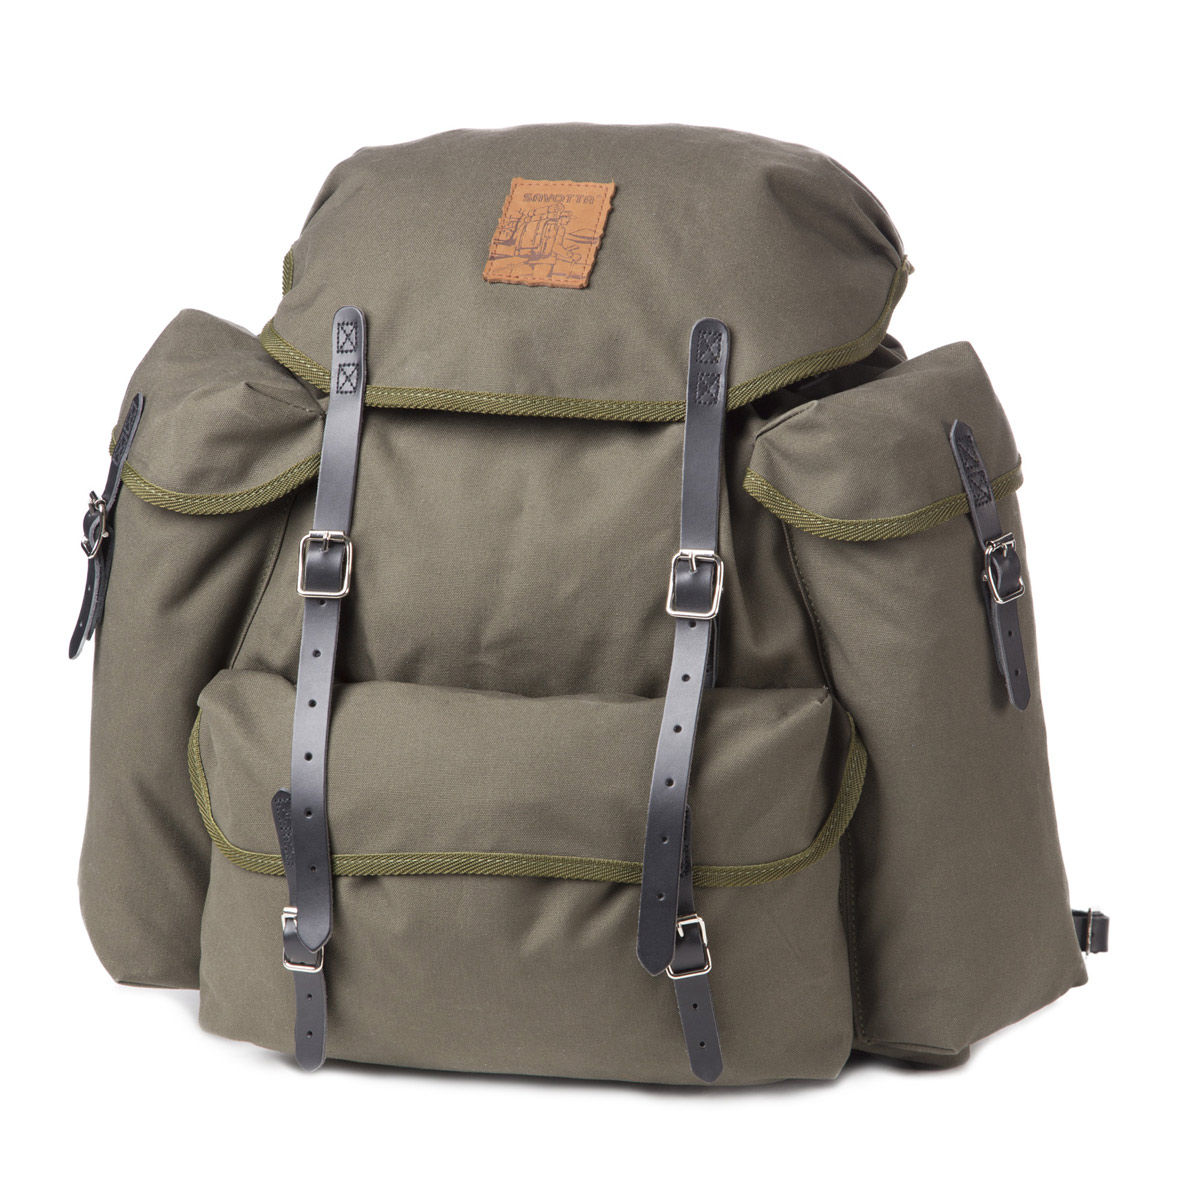 Savotta Saddle Sack 323